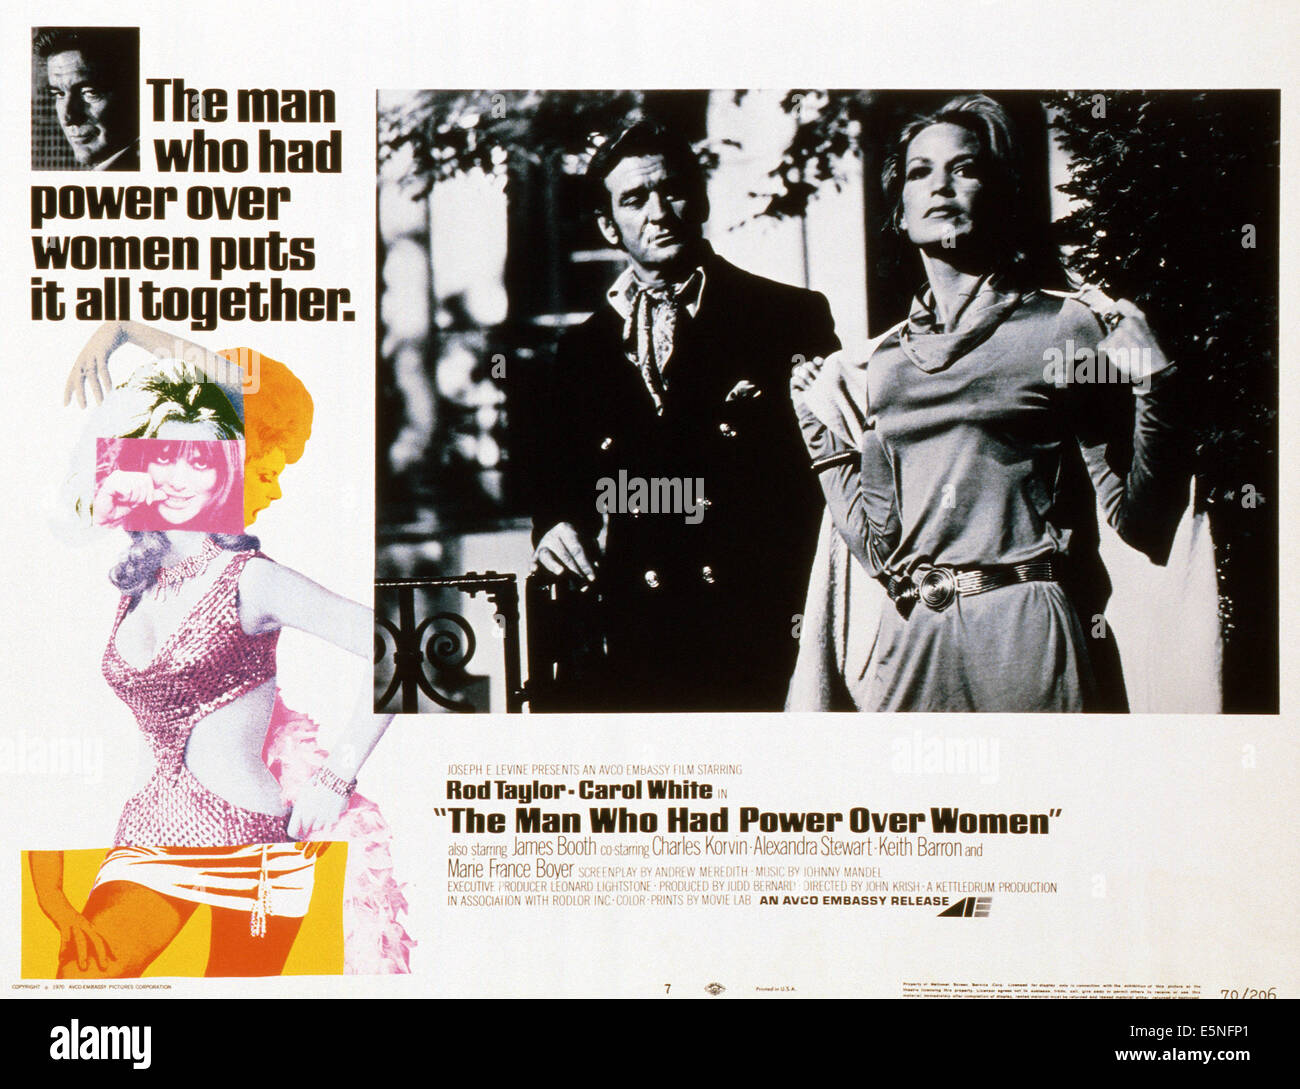 THE MAN WHO HAD POWER OVER WOMEN, Rod Taylor (left and center), 1970 - Stock Image